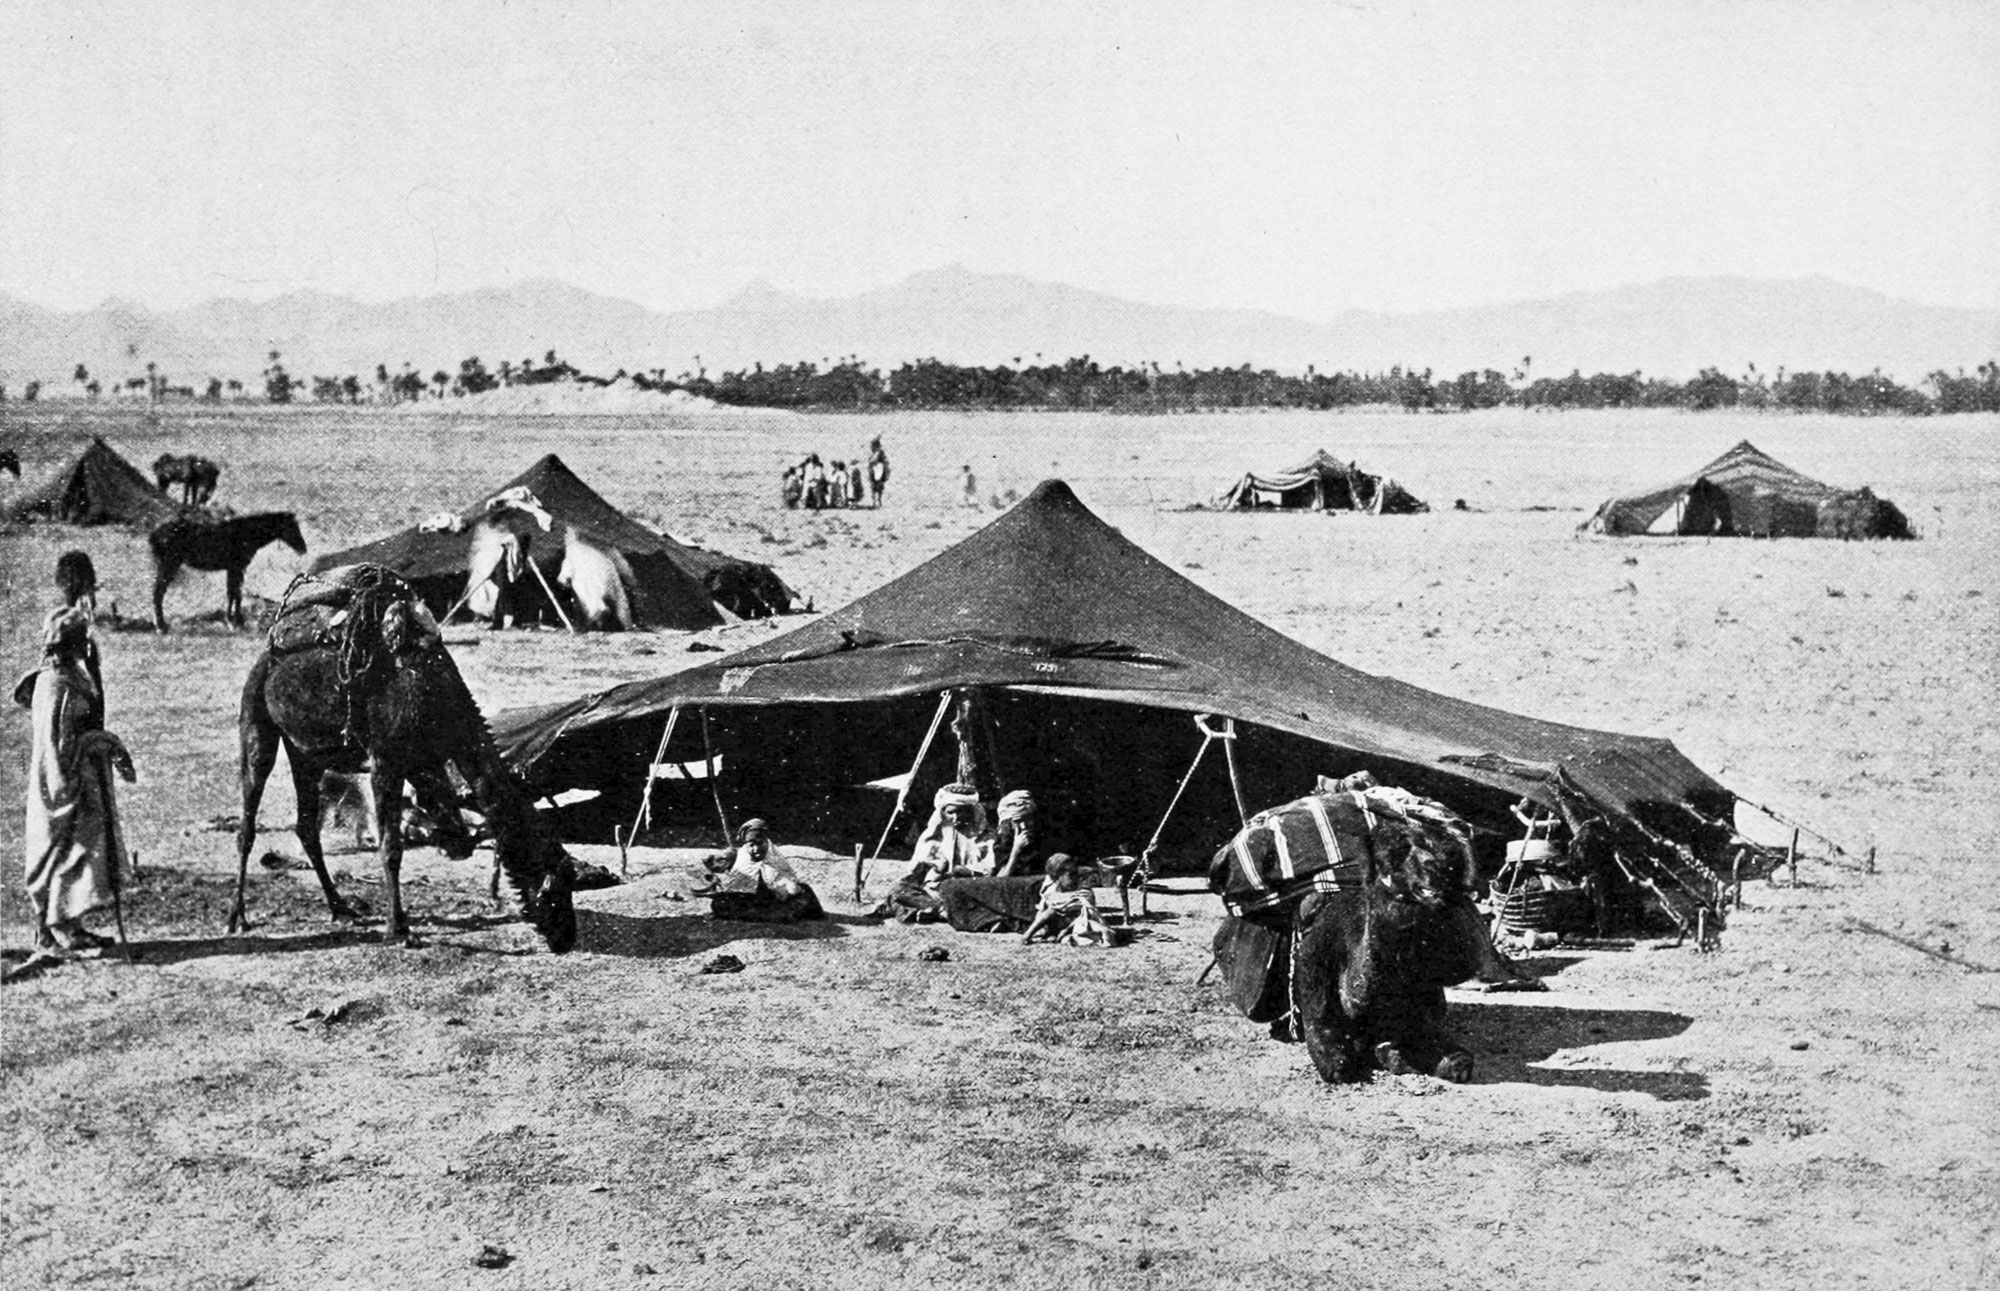 PSM_V52_D609_Bedouin_encampment_in_the_sahara_and_the_atlas_mountains.jpg